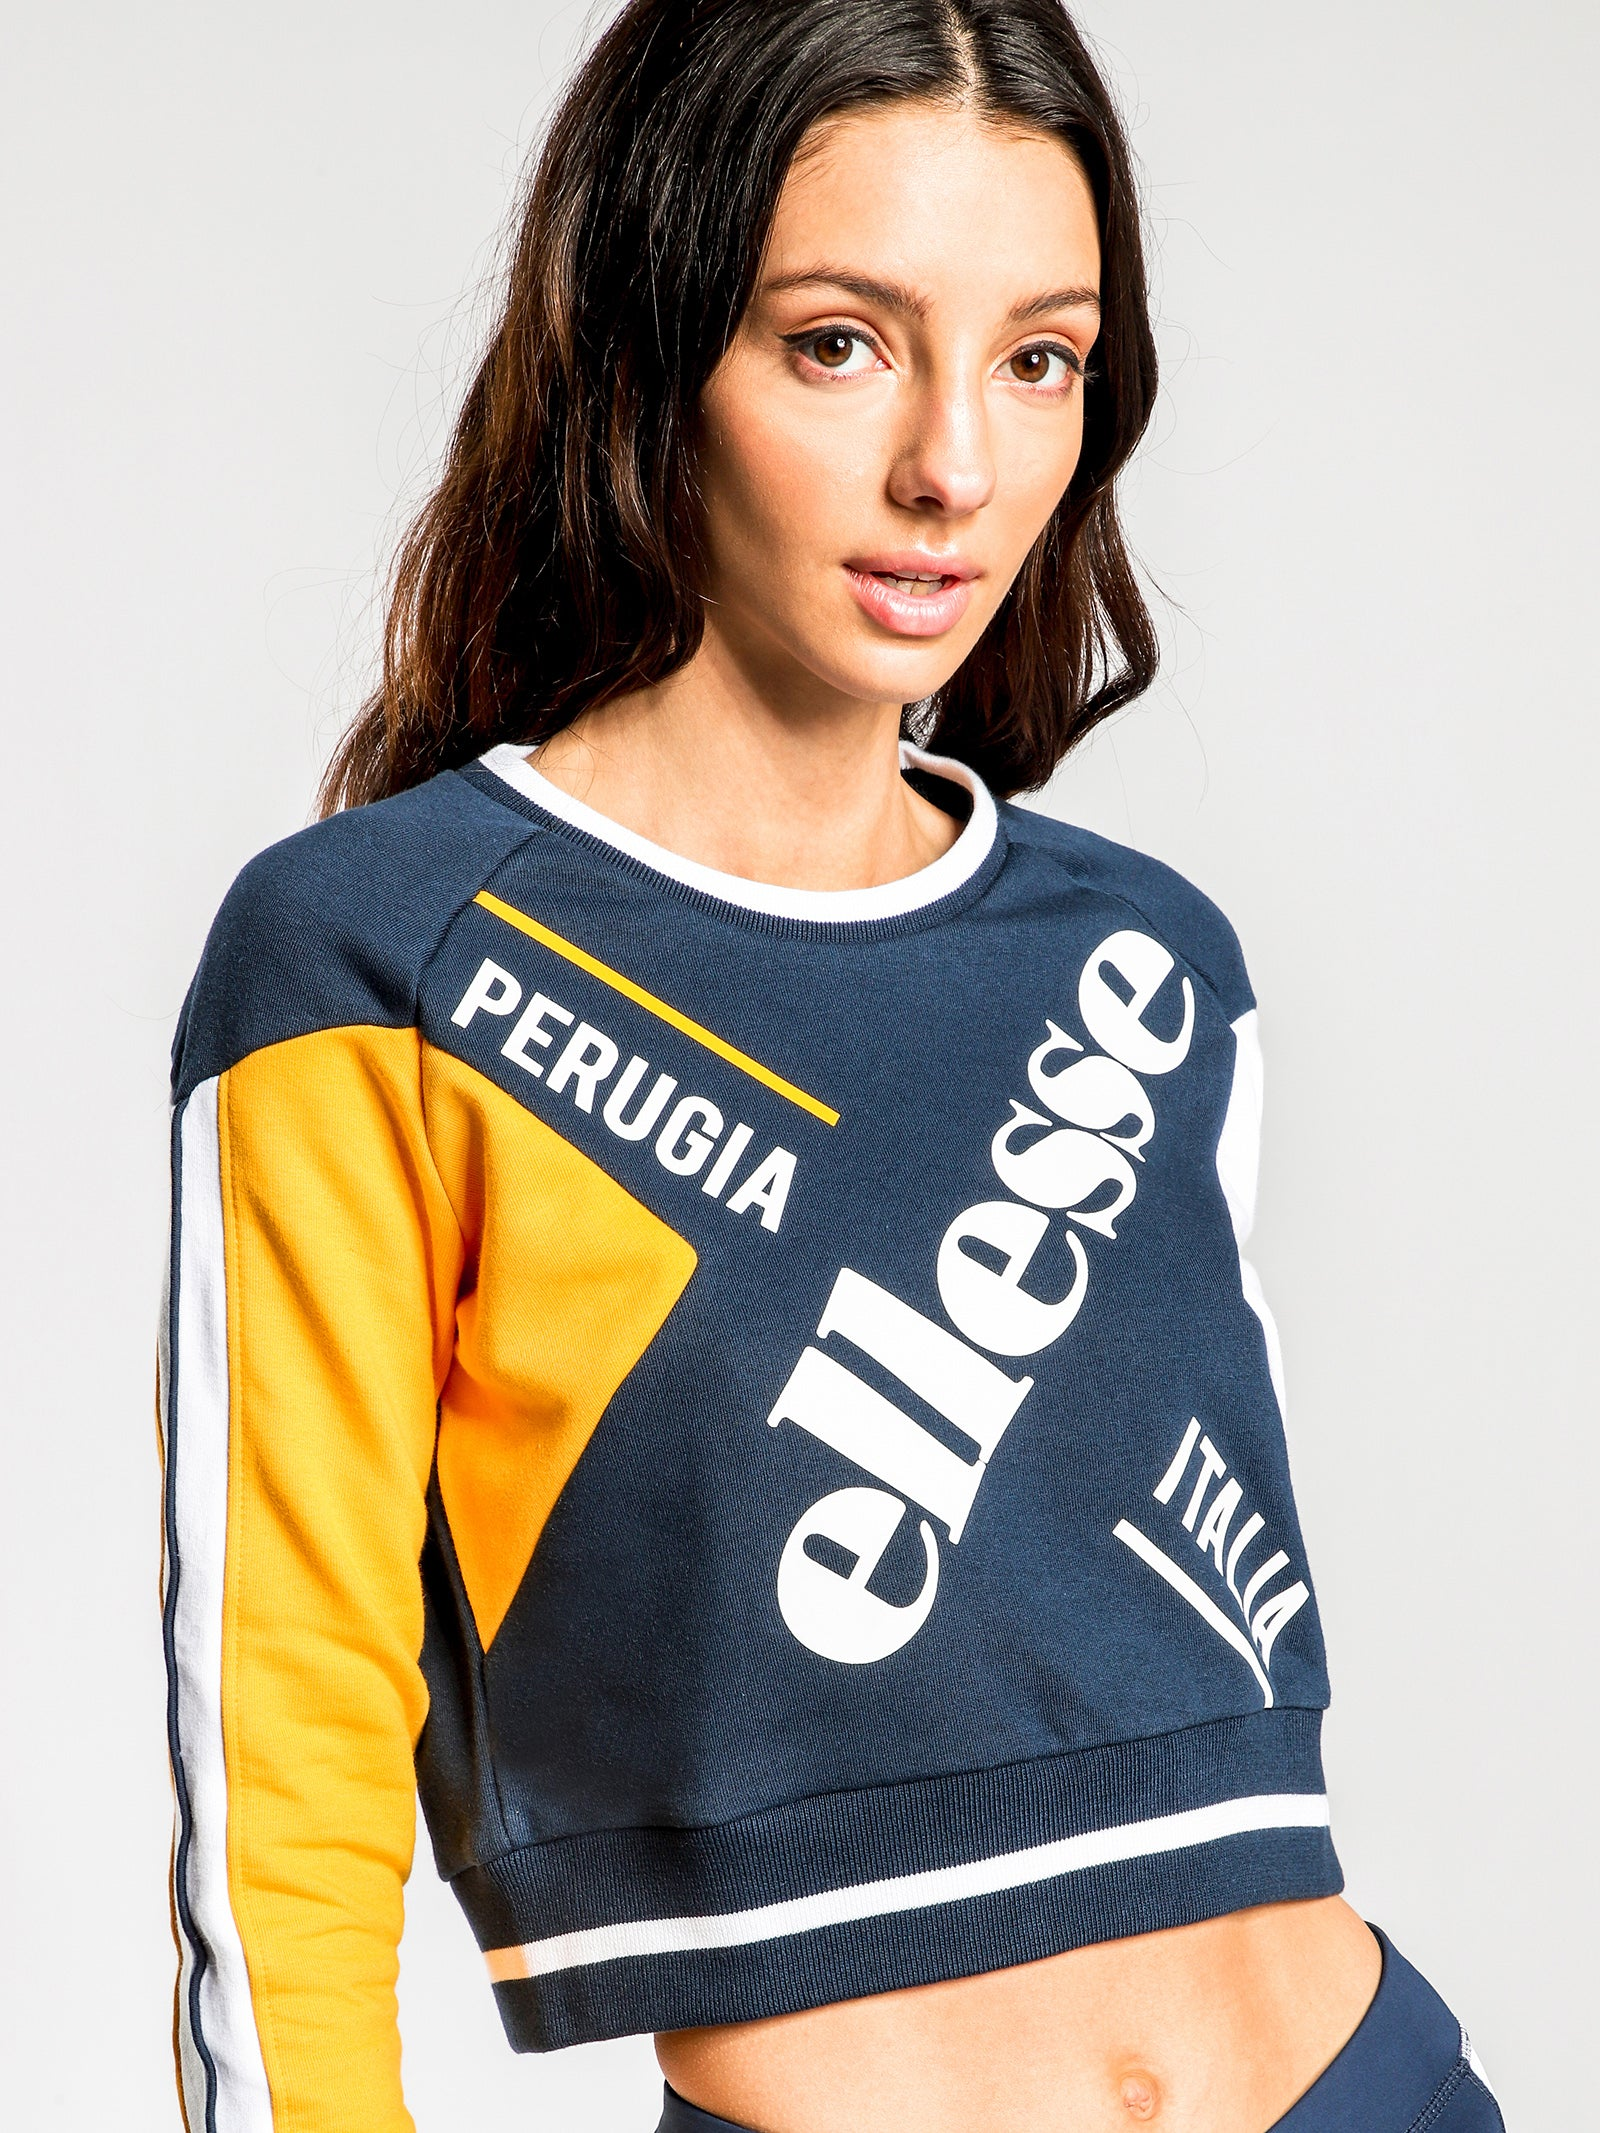 Mania Crew Jumper in Blue & Yellow